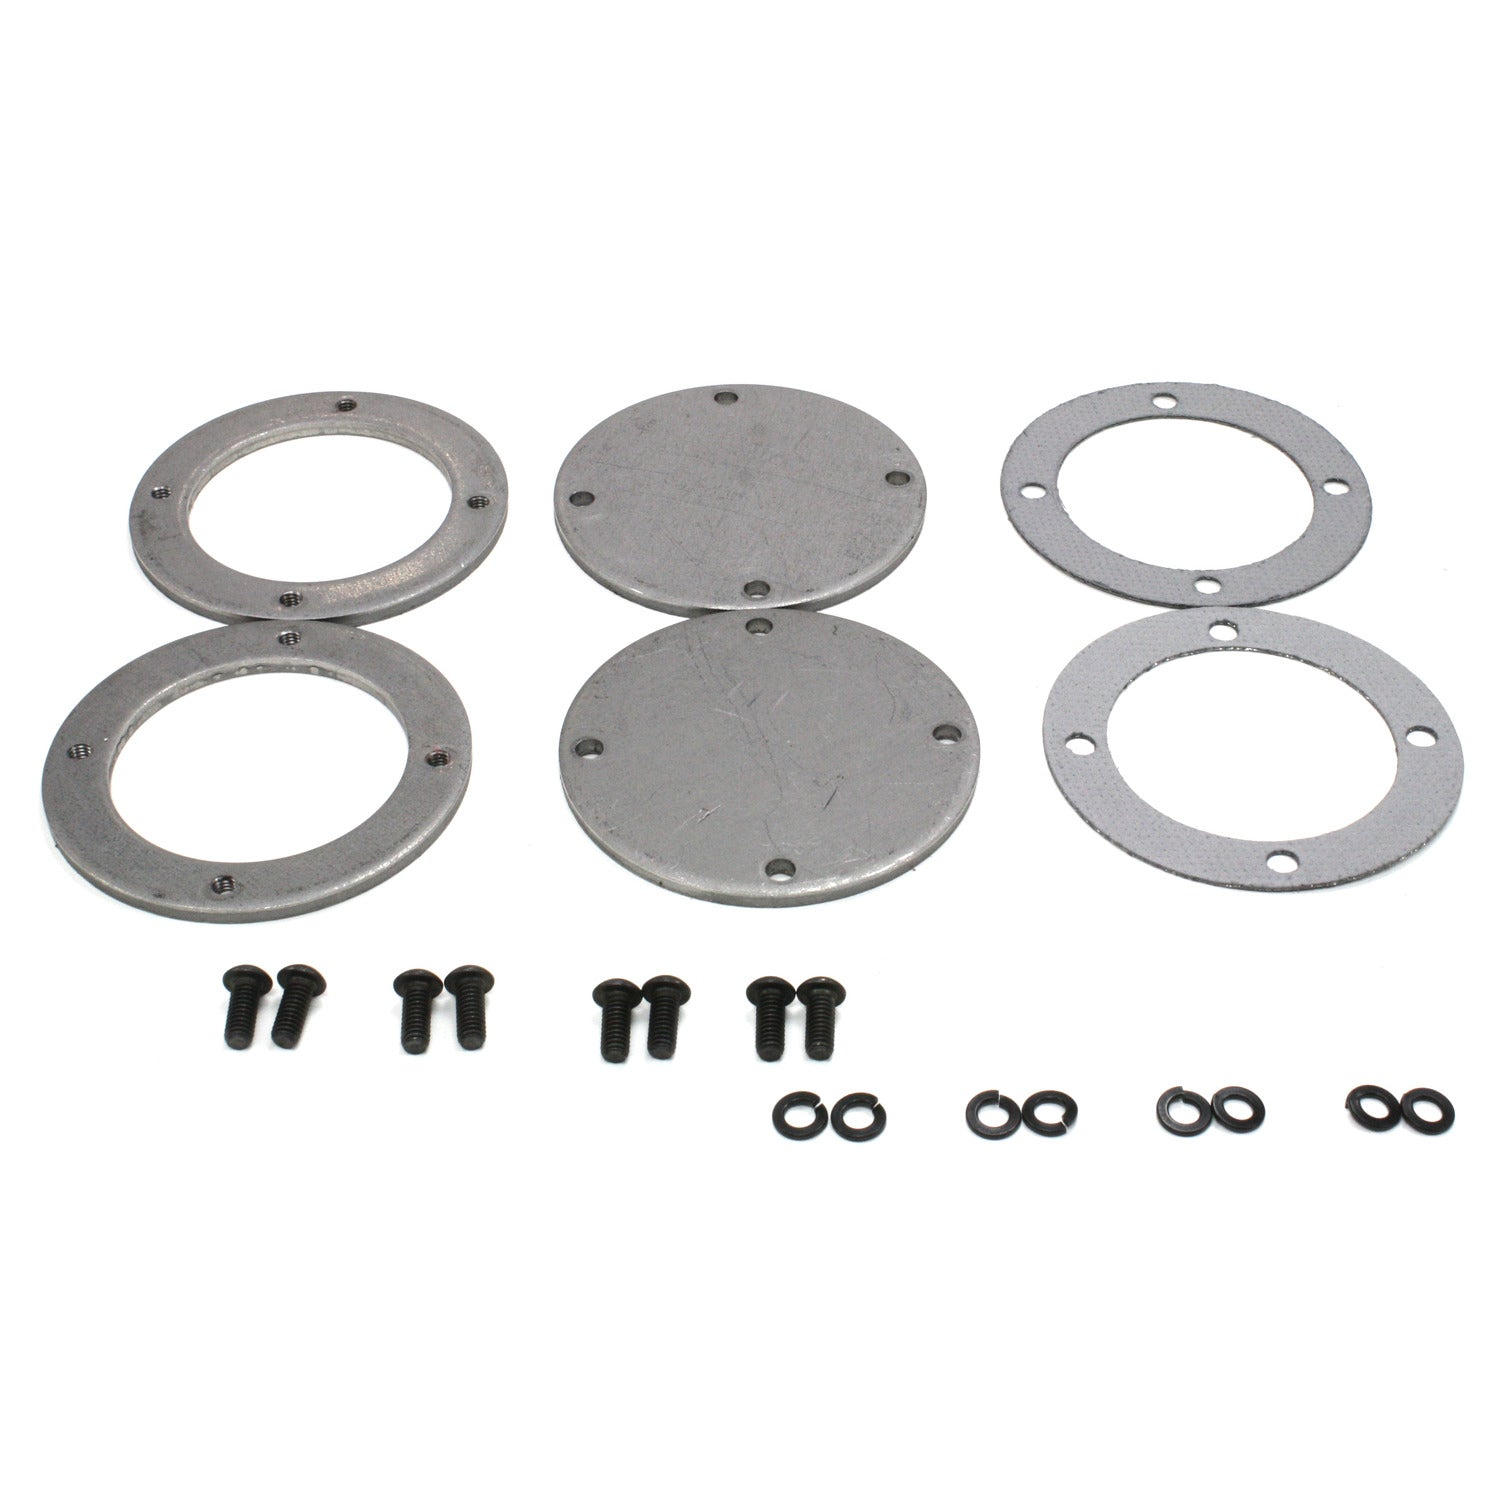 Patriot Exhaust H7266 Collector Flange Kit 4 Bolt Round 3 1/2""